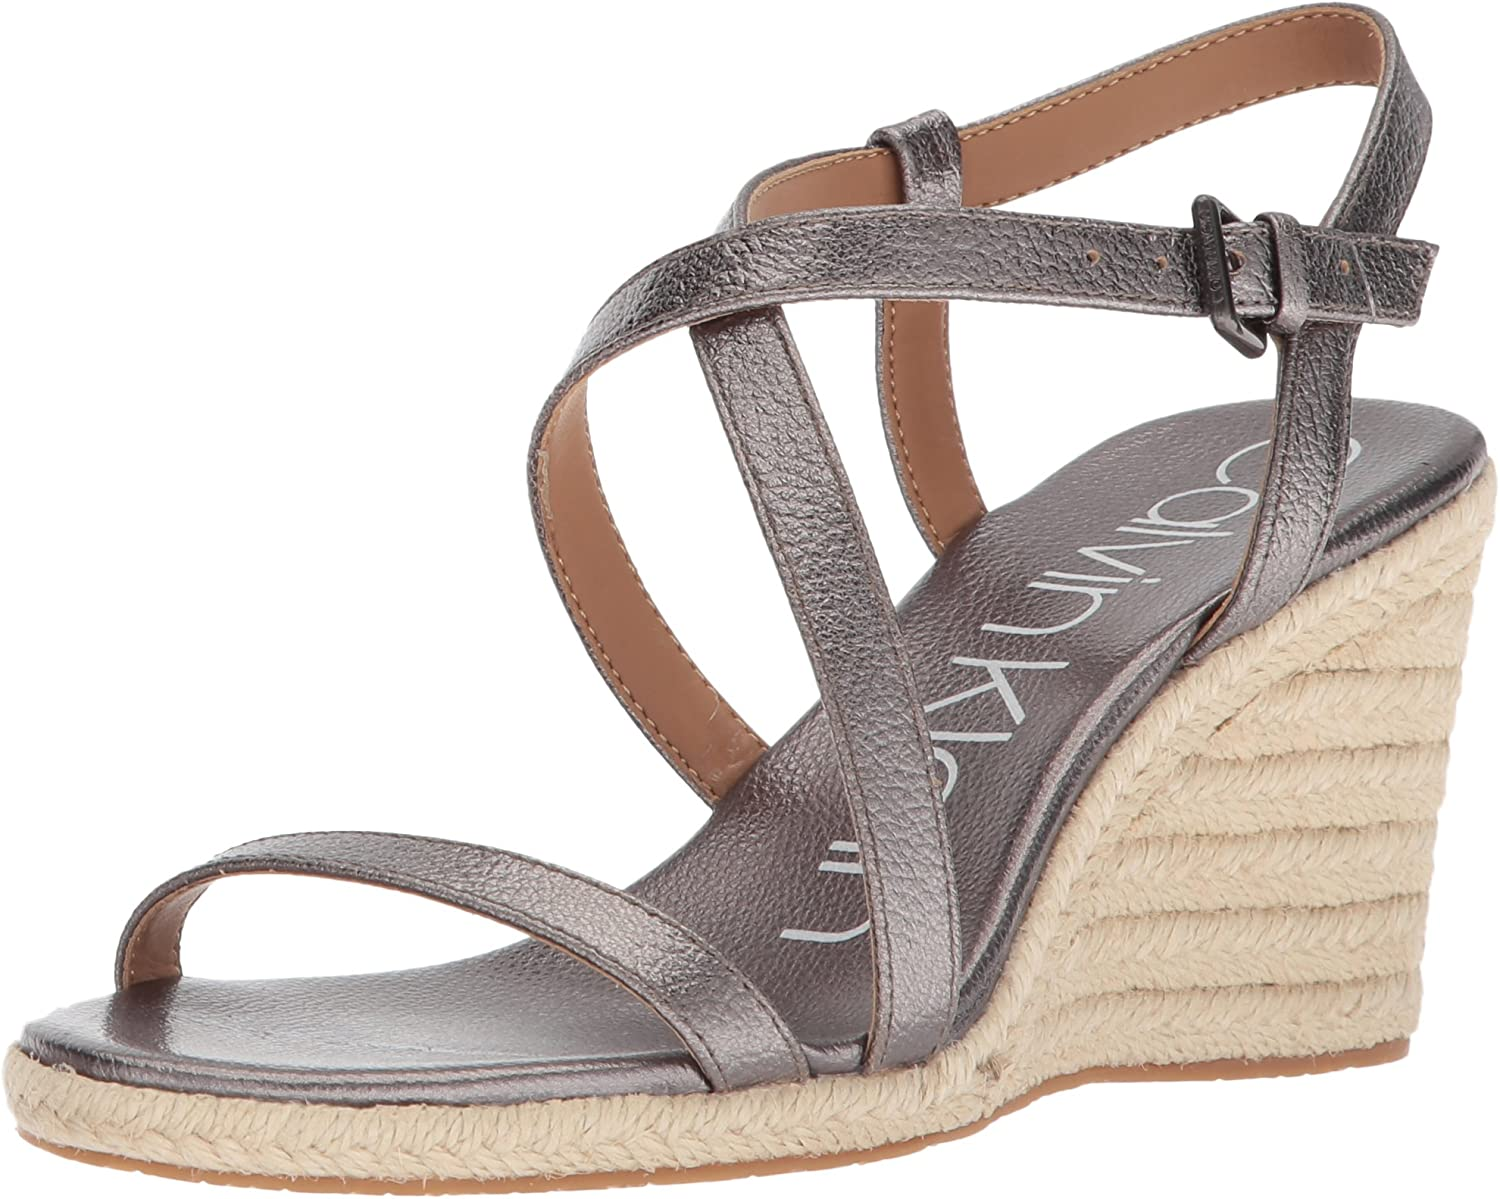 Calvin Klein Women's Sandal Popular products Wedge New color